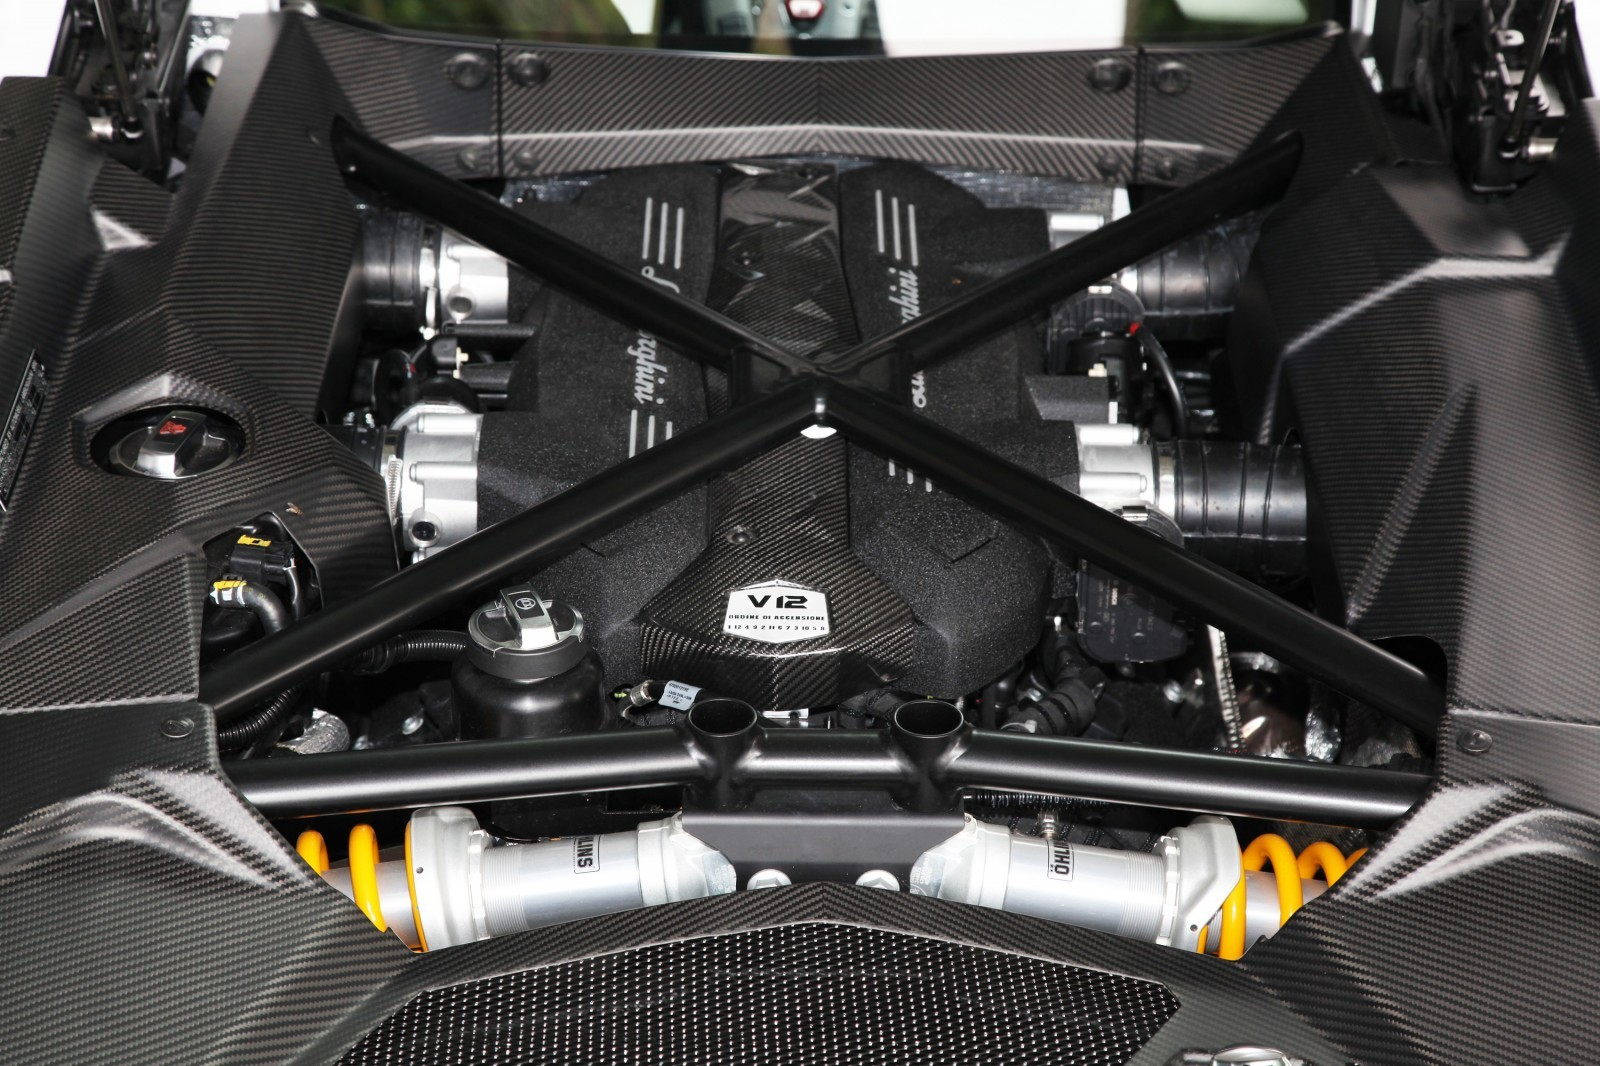 Lamborghini Aventador Becomes A Real Screamer With CAPRISTO Exhaust Upgrade 19